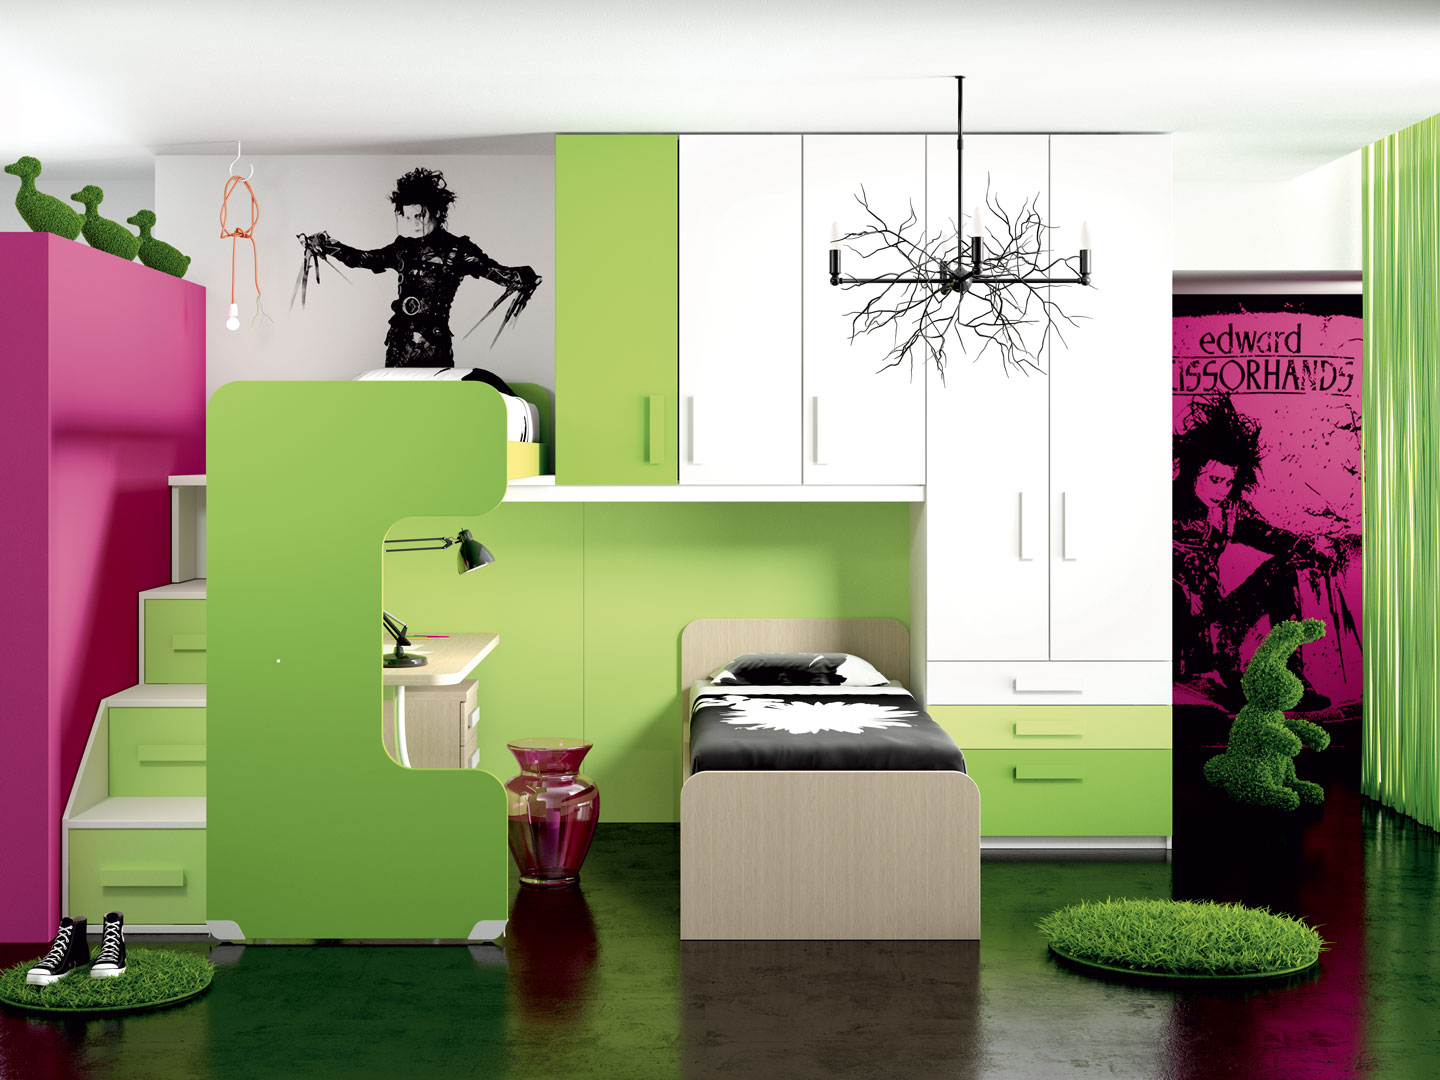 Camerette made in italy ima mobili composizione 4 newformsdesign camerette newformsdesign - Mobili made in italy ...